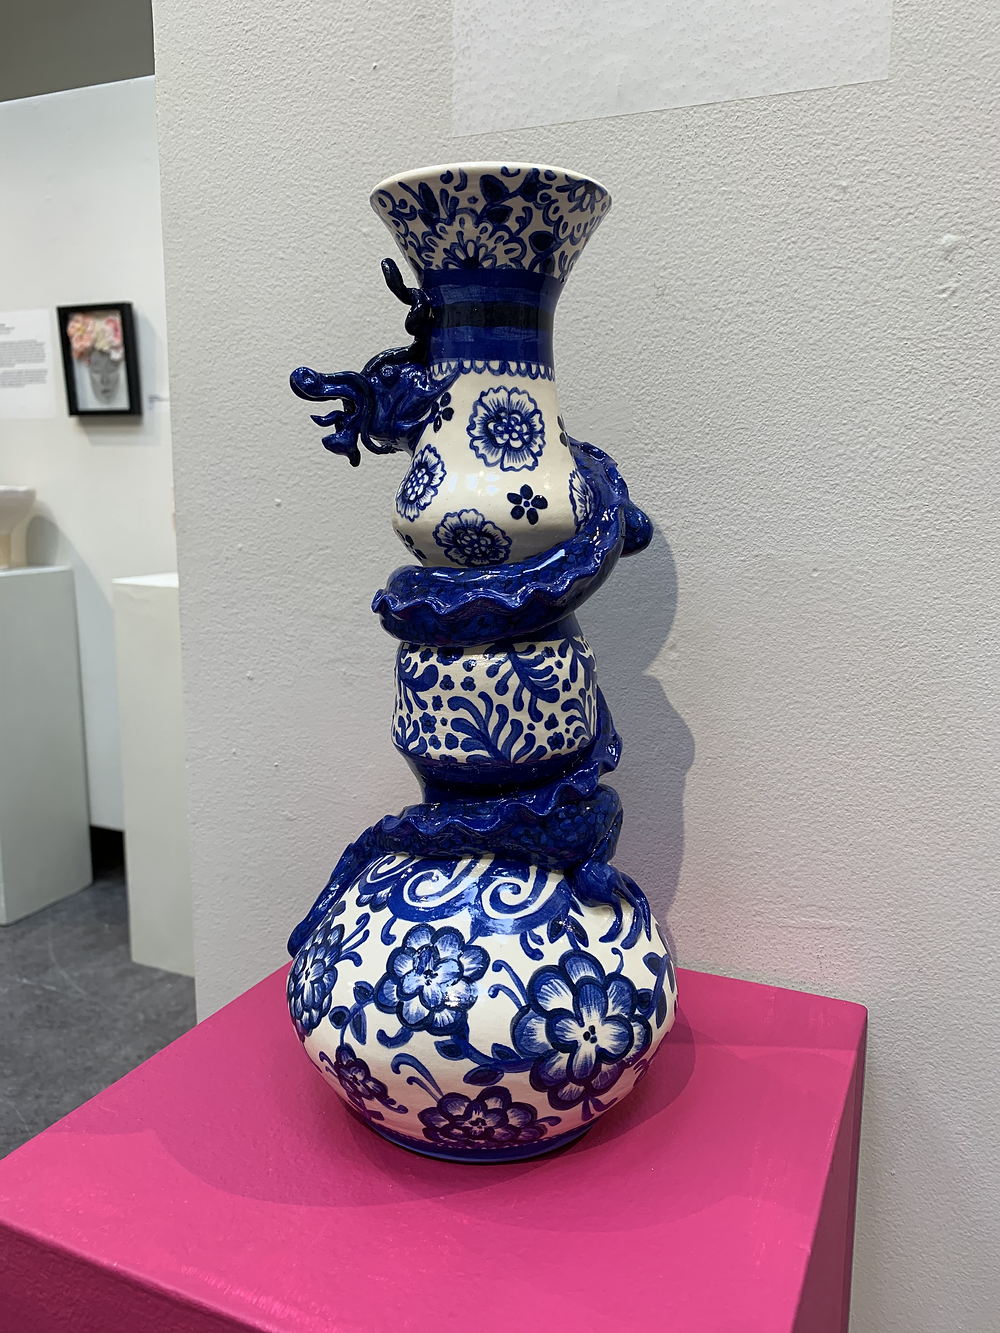 A blue and white ceramic vase with a dragon coiled around it